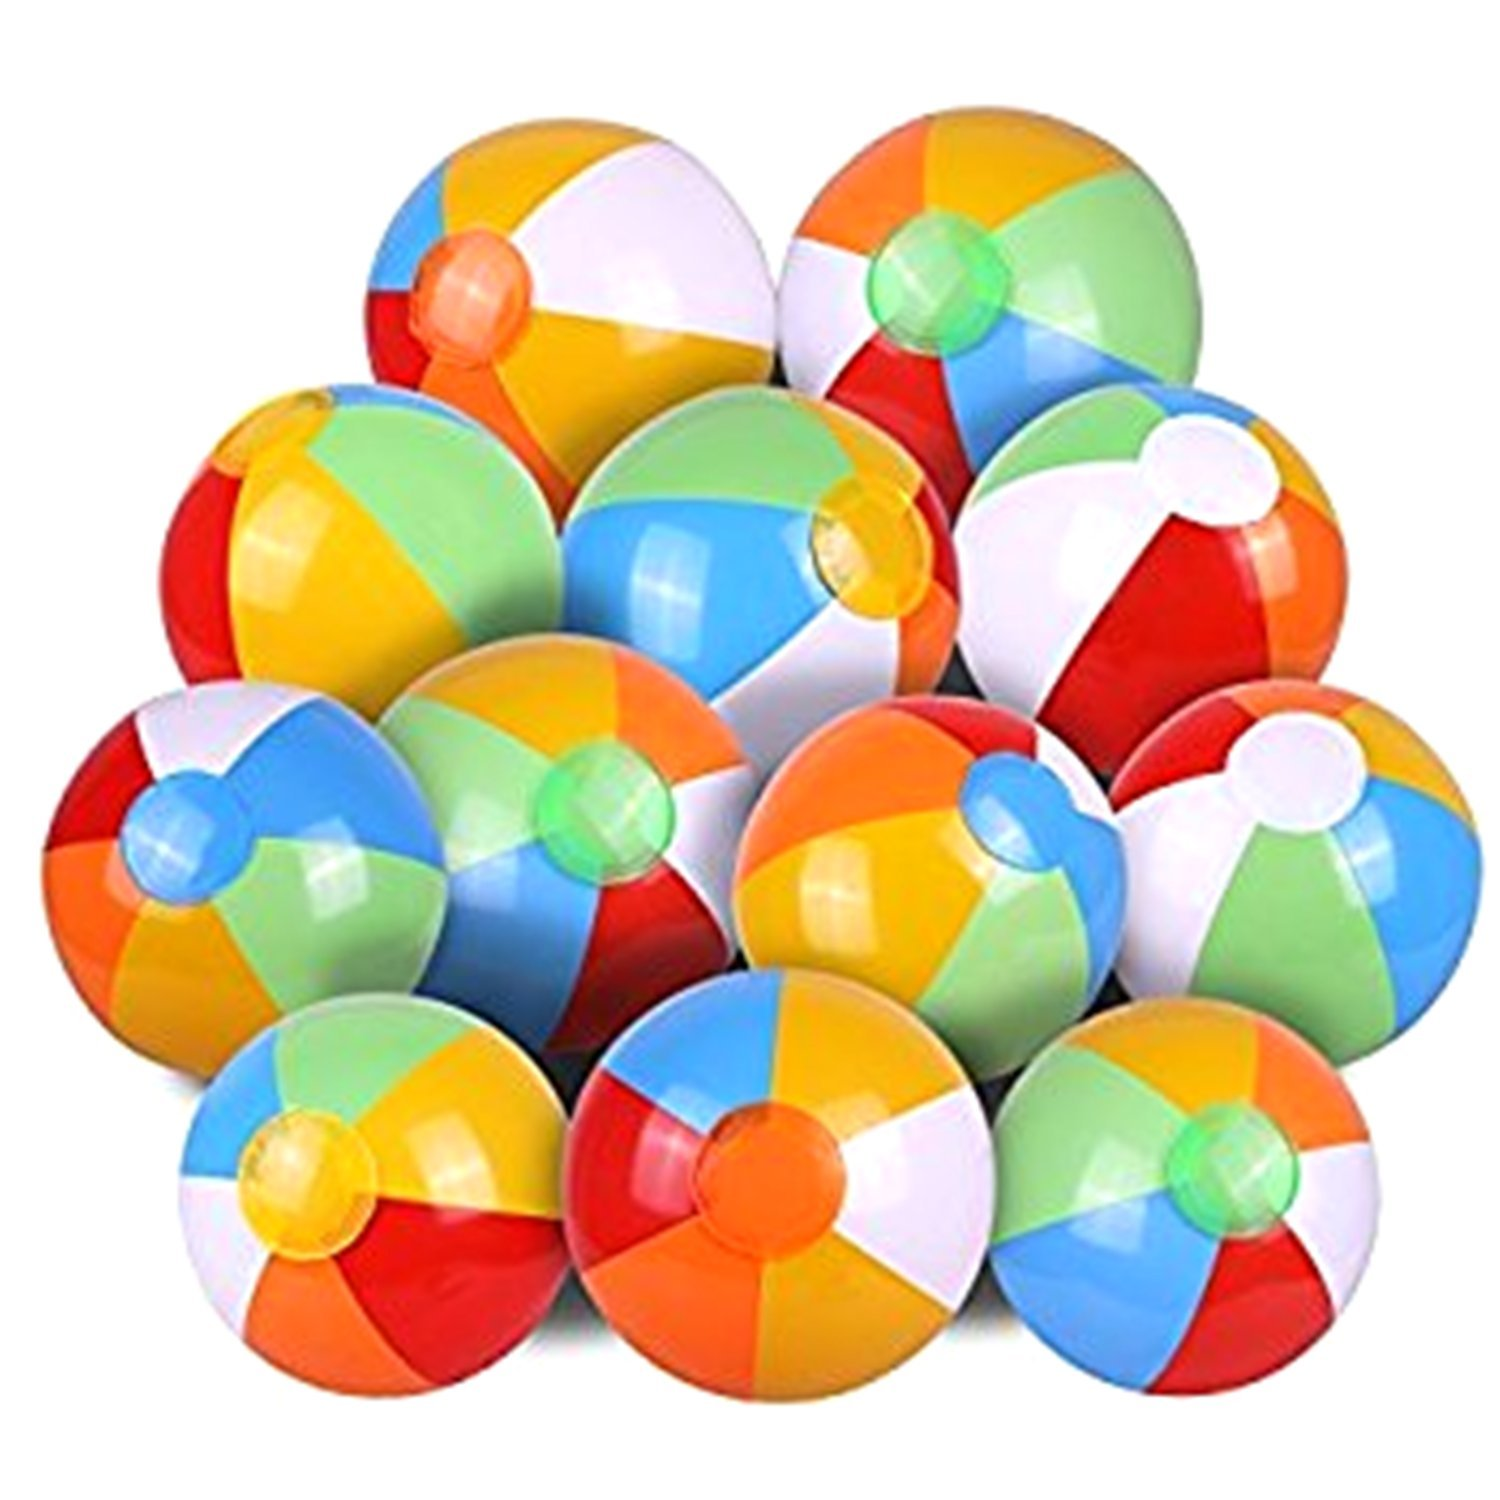 JEWELS FASHION (1DOZEN)12''Inflatable Beach Ball-Ideal for Poolside,Decoration,Concerts,Lakes,Beach,BBQ,Camping,Park,Party-Can Be Inflated Via Mouth,Hand Pump, Pressure Pump, etc by JEWELS FASHION